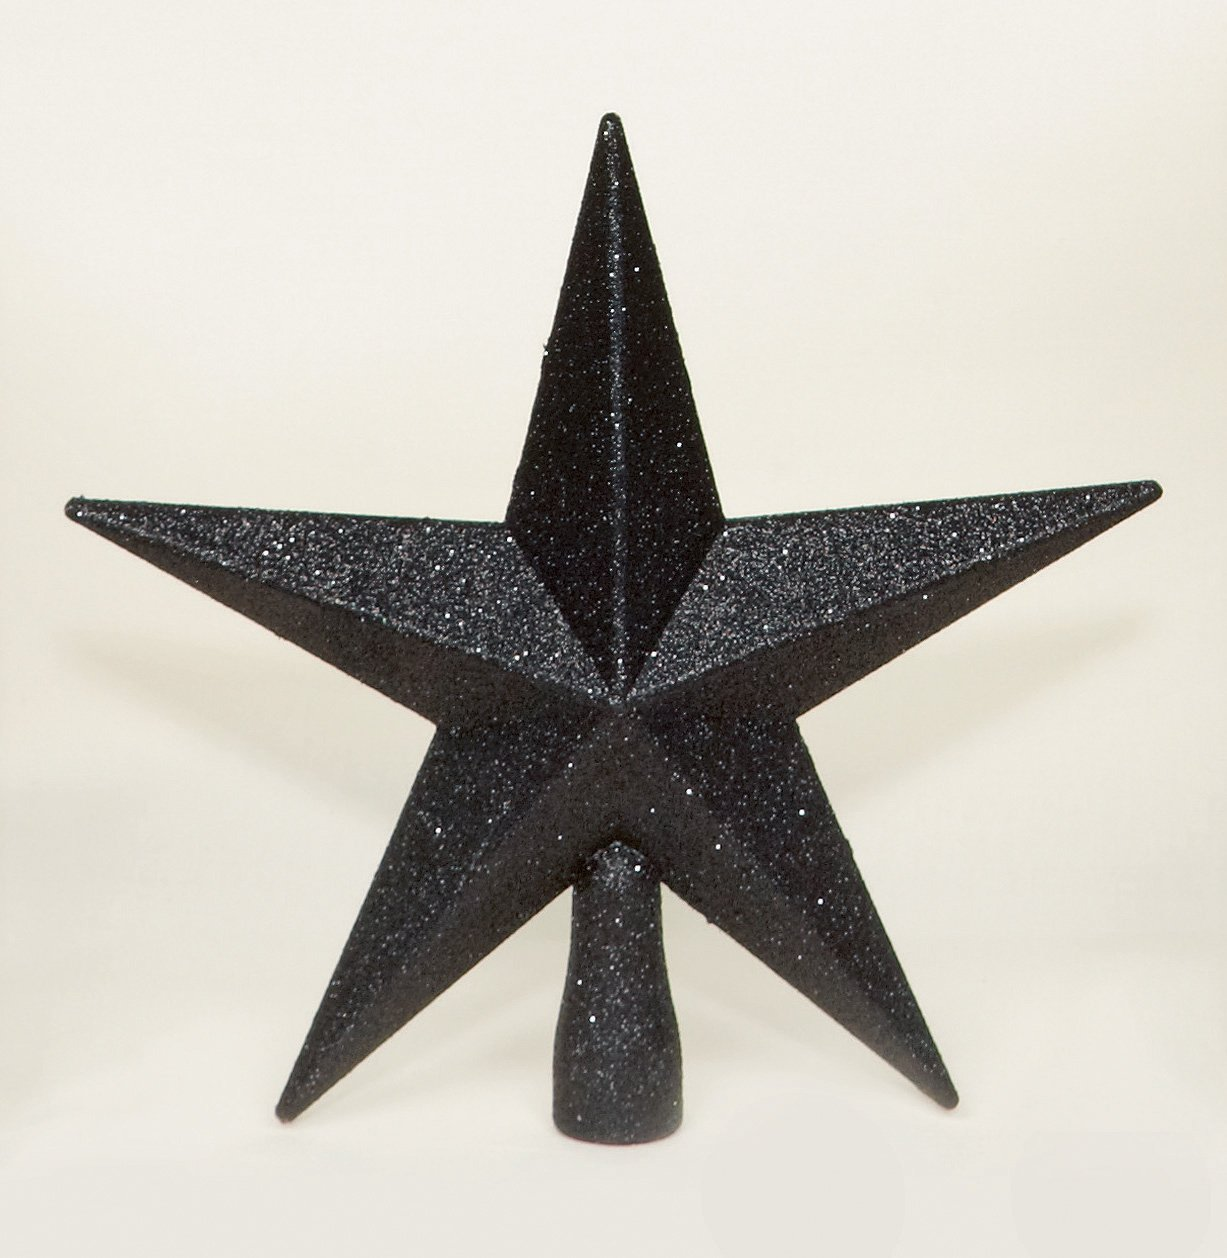 Black Christmas Tree Top Star Topper Glitter finish 20cm premier TD126324BK